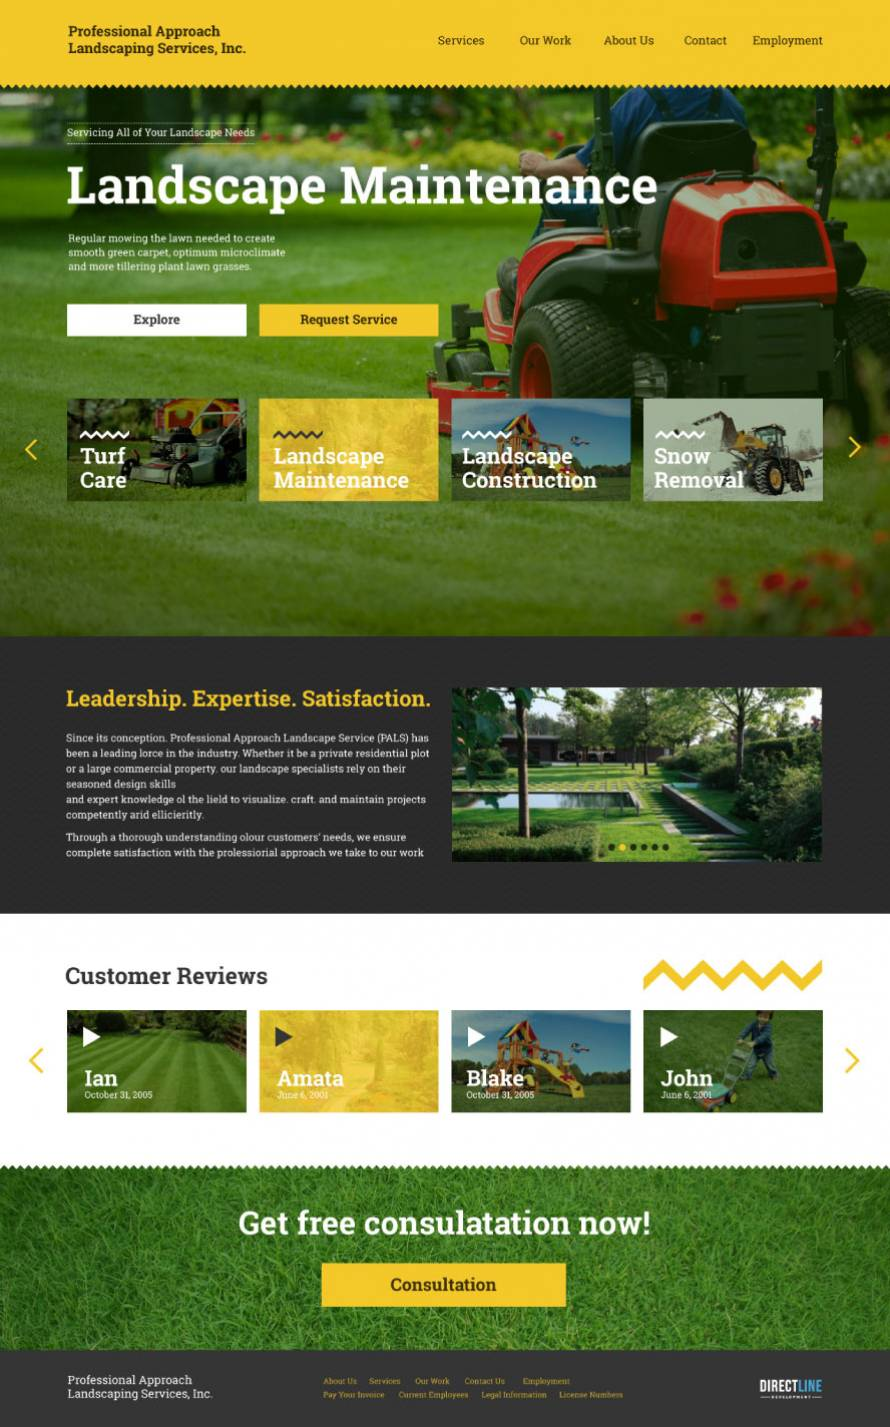 Professional Approach Landscaping Services Result